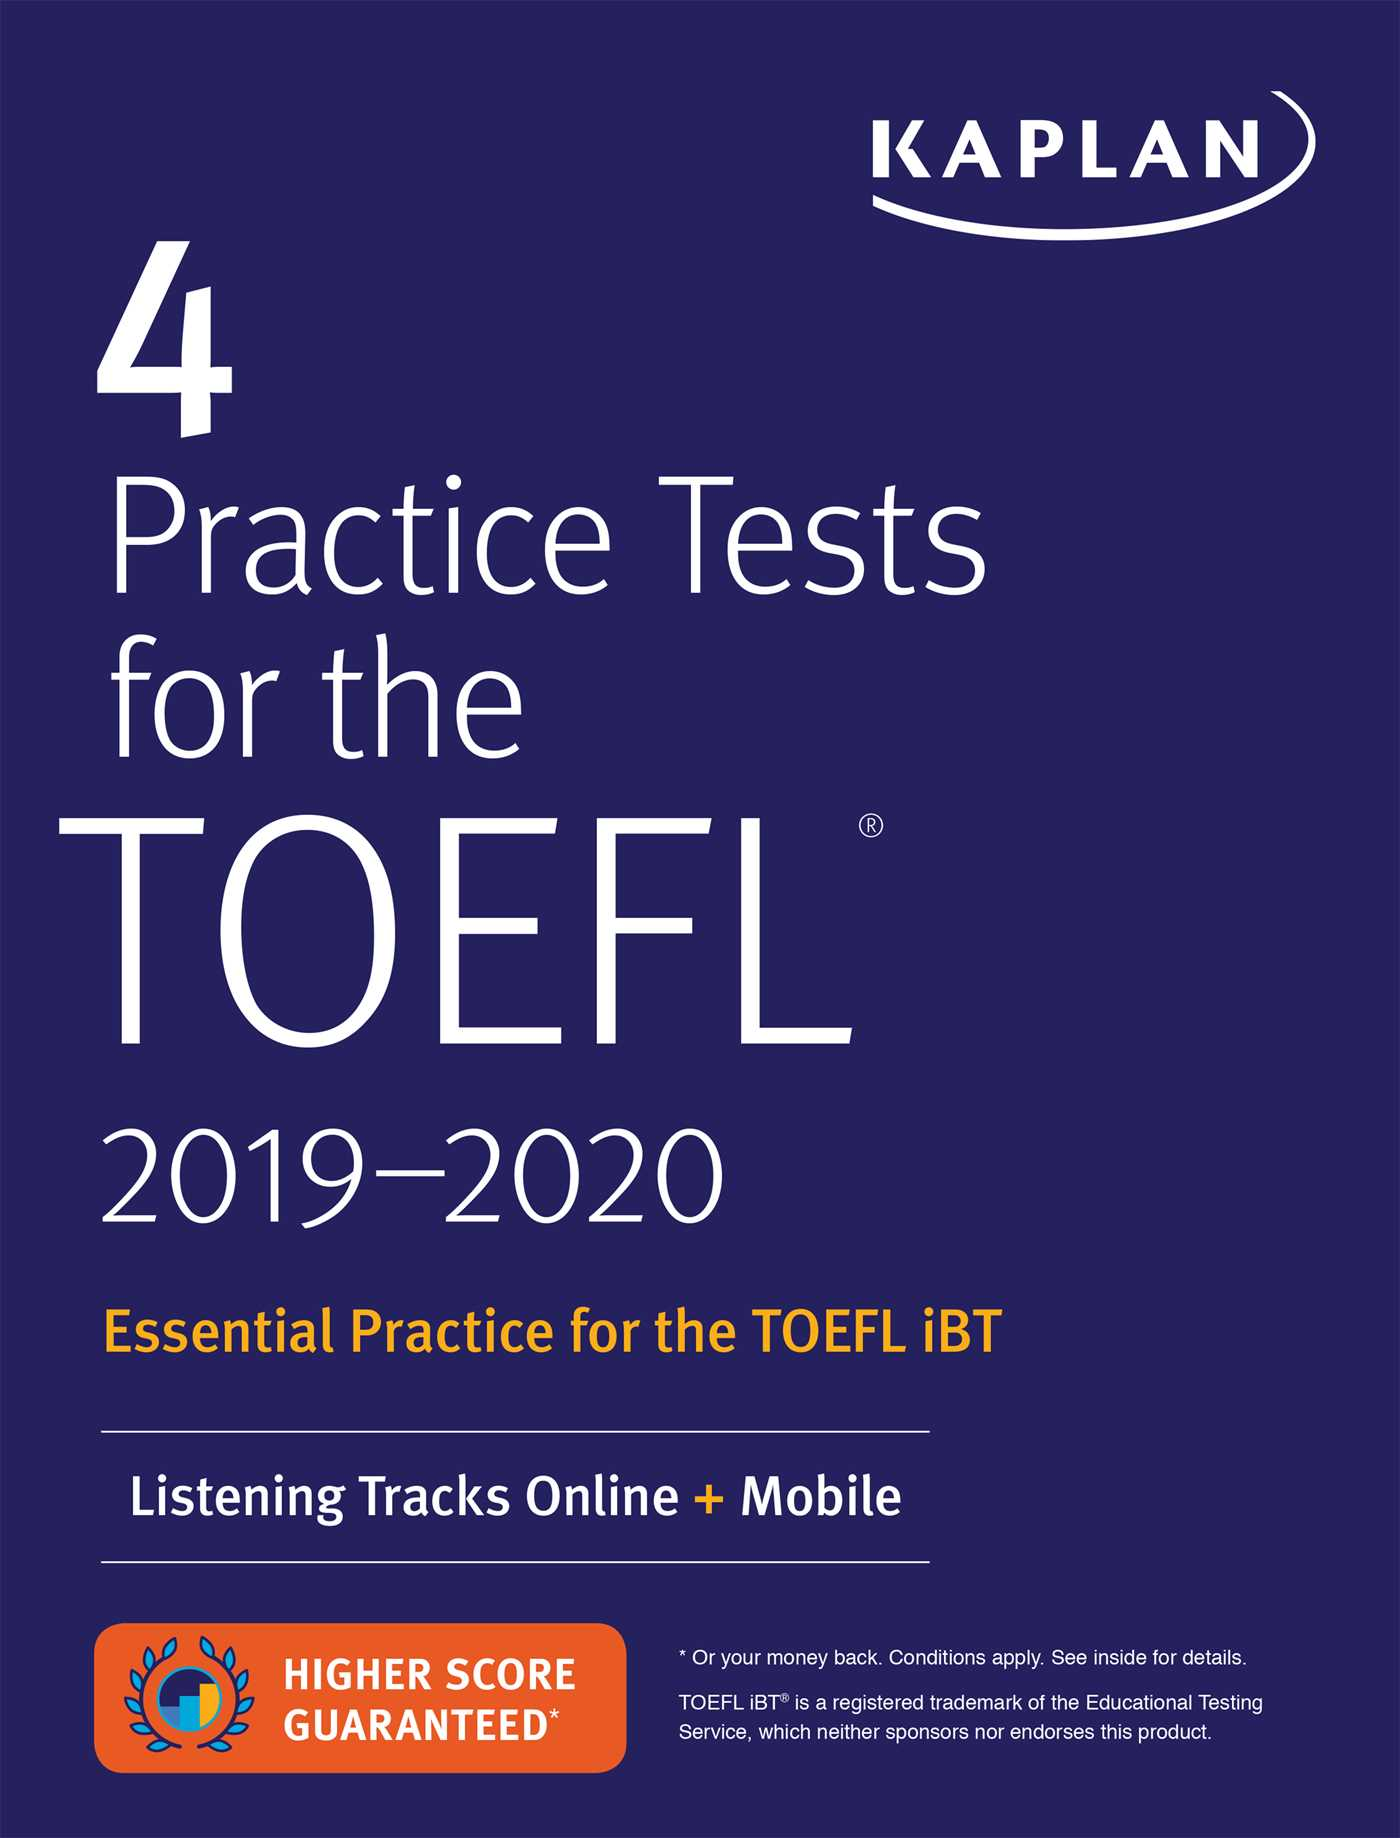 Book Cover Image Jpg 4 Practice Tests For The TOEFL 2019 2020